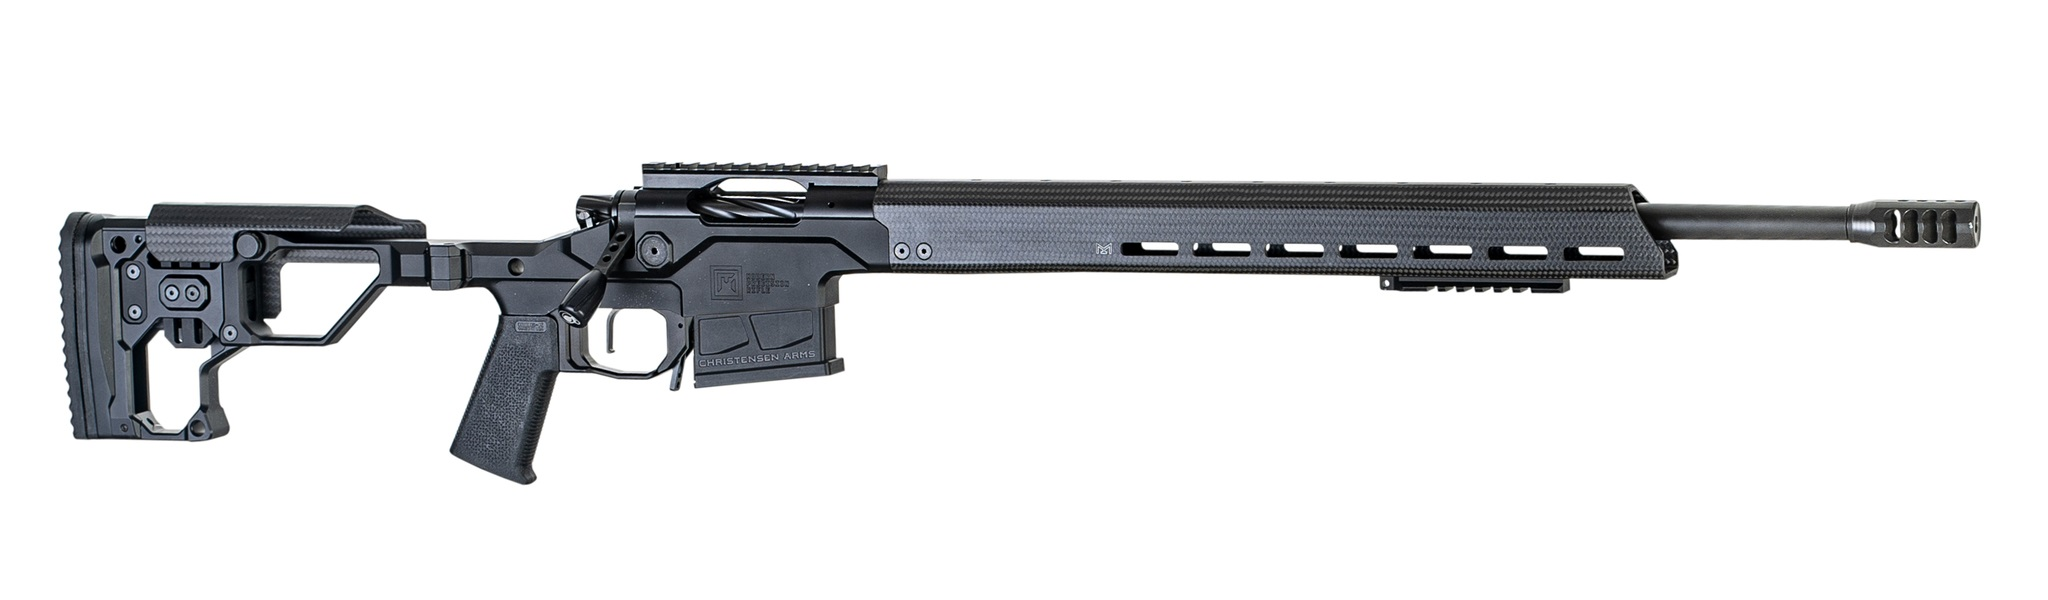 Christensen Arms Modern Precision Rifle 6.5 Creedmoor